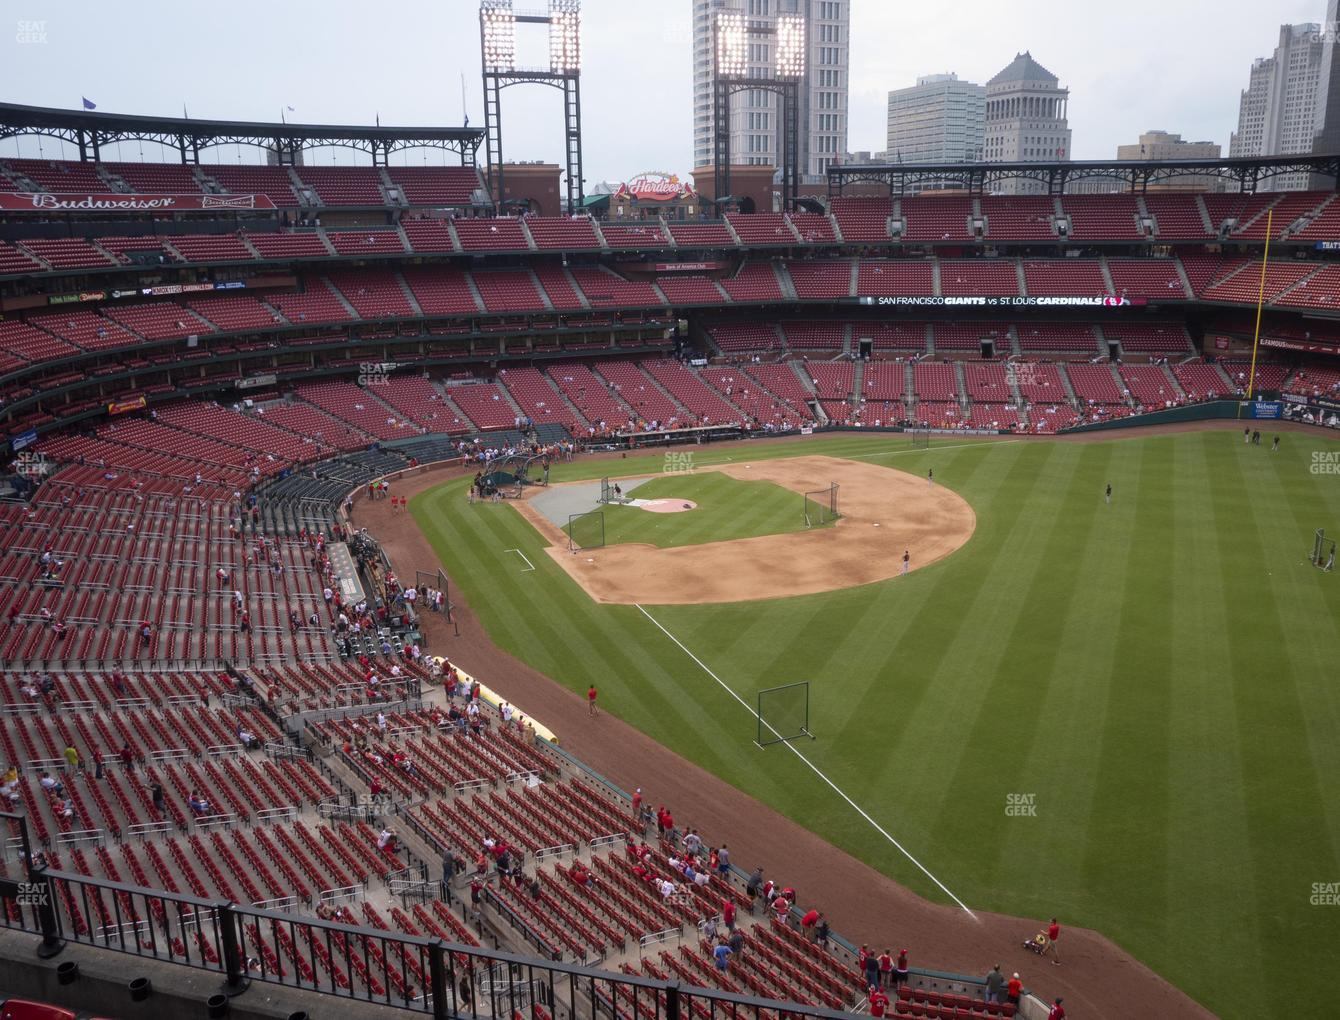 St. Louis Cardinals at Busch Stadium Right Field Pavilion 332 View